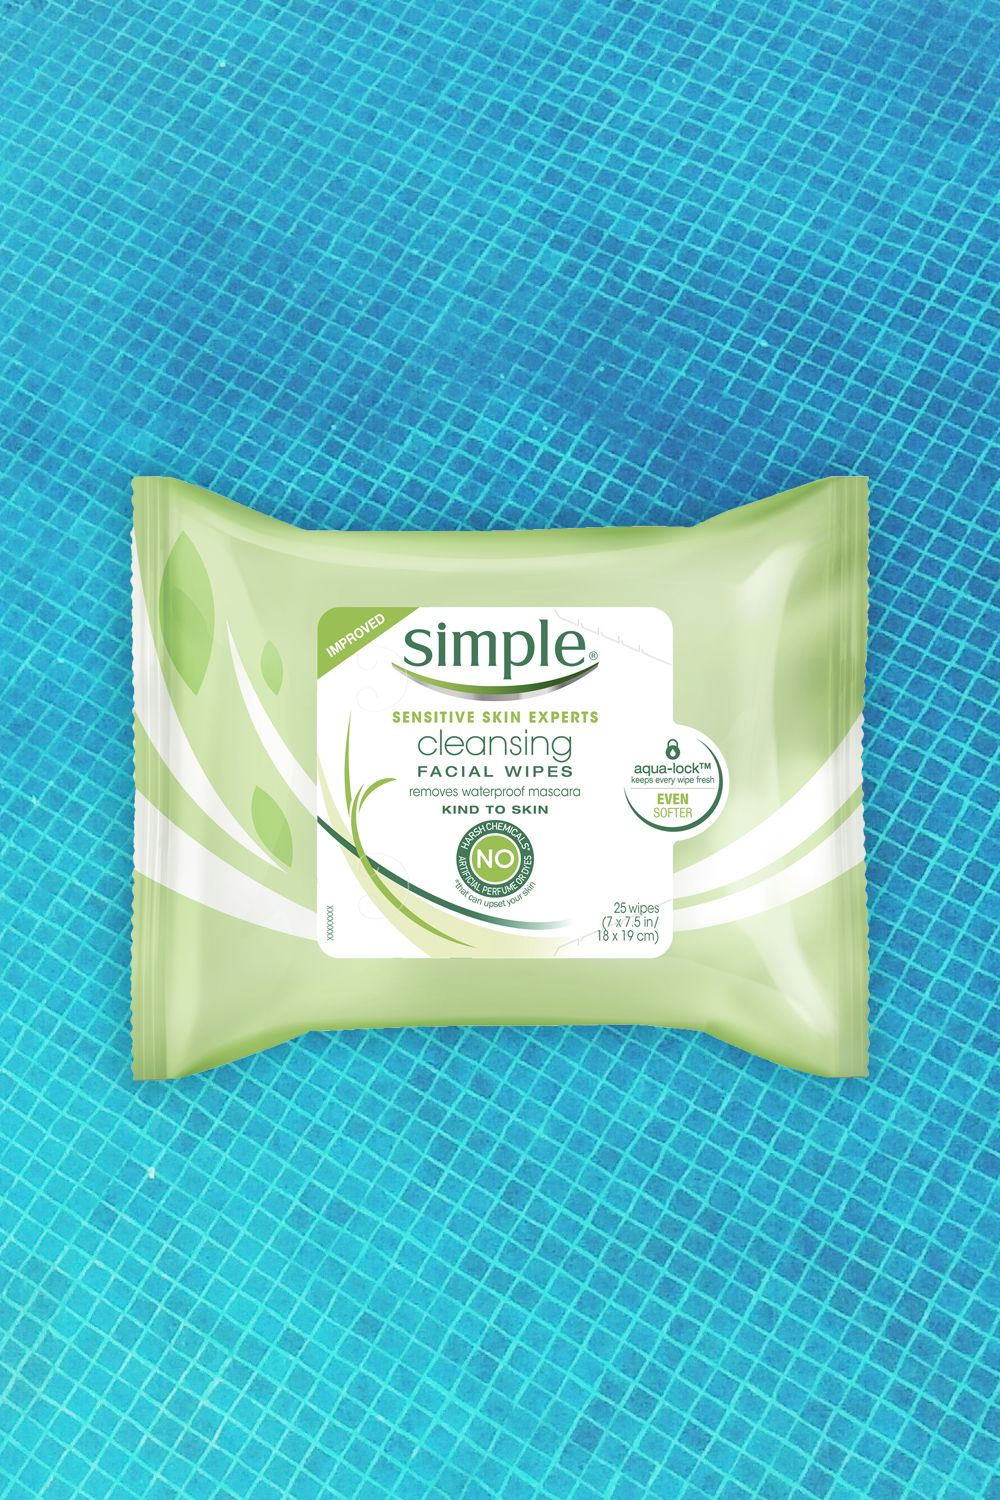 """<p>There are few things more satisfying than taking off a day's worth of makeup and gunk in a few easy swipes — while lying in bed. That's the beauty of face wipes! But just when you thought towelettes couldn't get any easier or convenient to use, Simple goes and upgrades its wipes. The new version is made with softer fibers, and updated packaging so your wipes won't dry out — even when you're down to the last one in the pack.</p><p><em><a href=""""http://bit.ly/2acDDnd"""" target=""""_blank"""">Simple Cleansing Facial Wipes</a>, $5.99 </em><br></p>"""